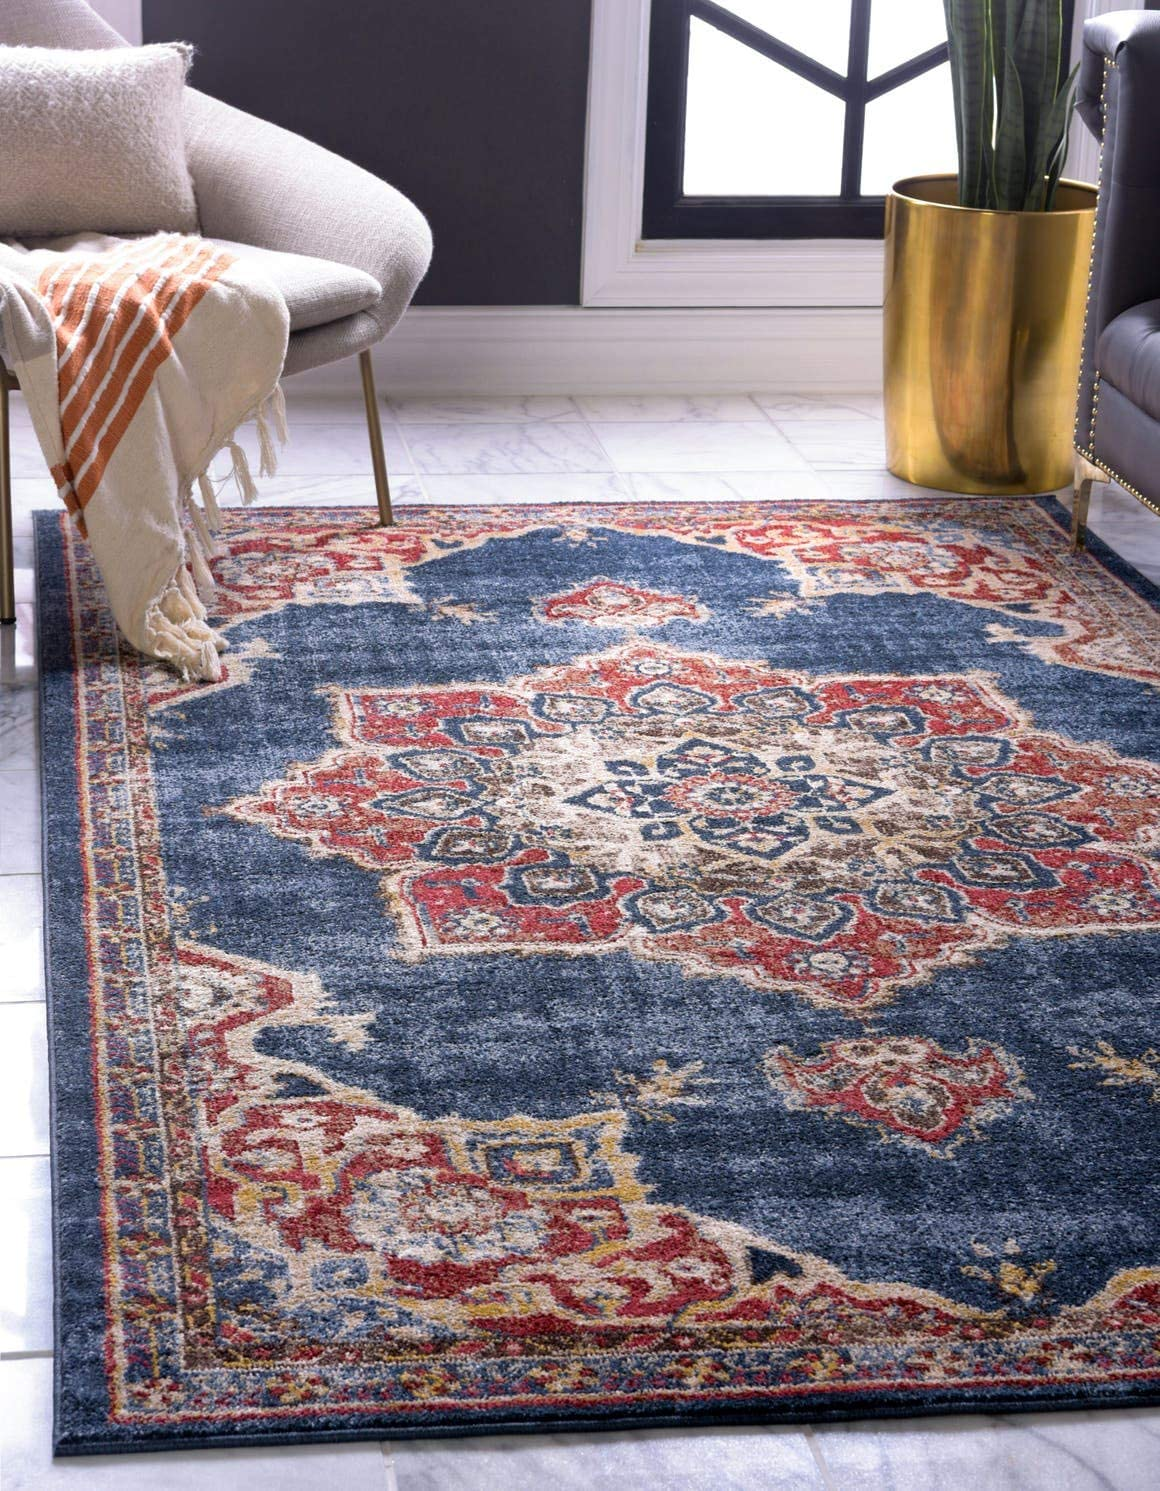 Unique Loom Utopia Collection Traditional Medallion Vintage Warm Tones Dark Blue Area Rug 8 0 x 10 0